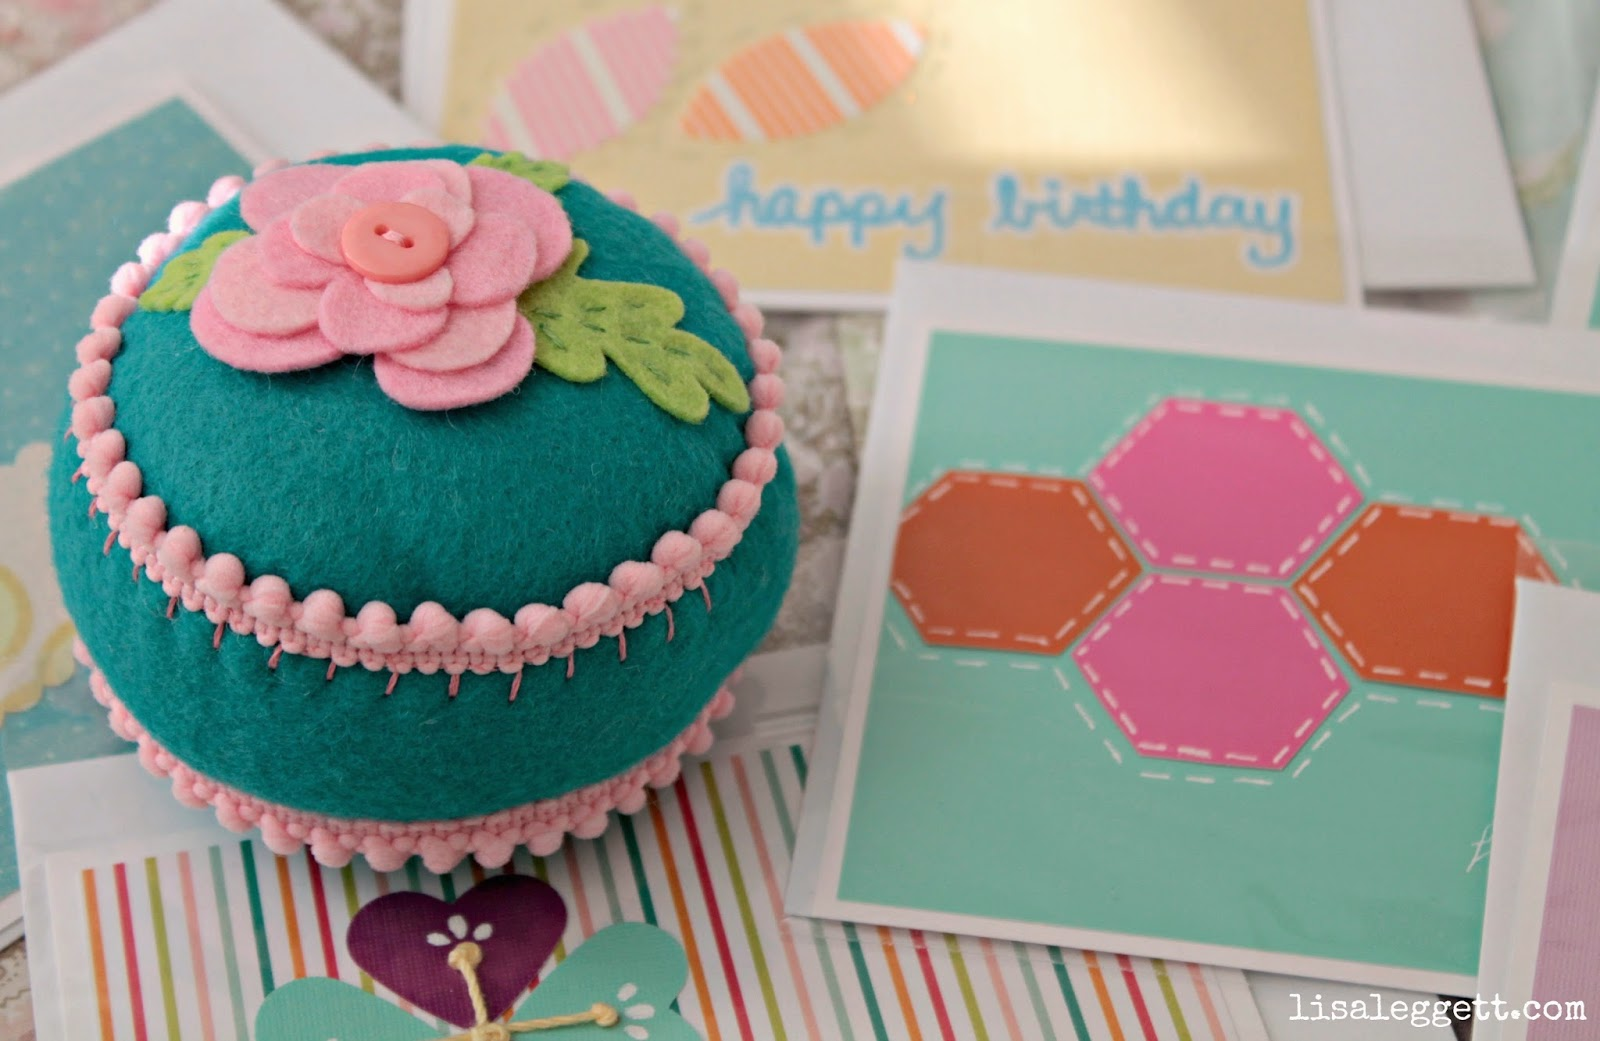 Pin Cushion & Cards by Lisa Leggett